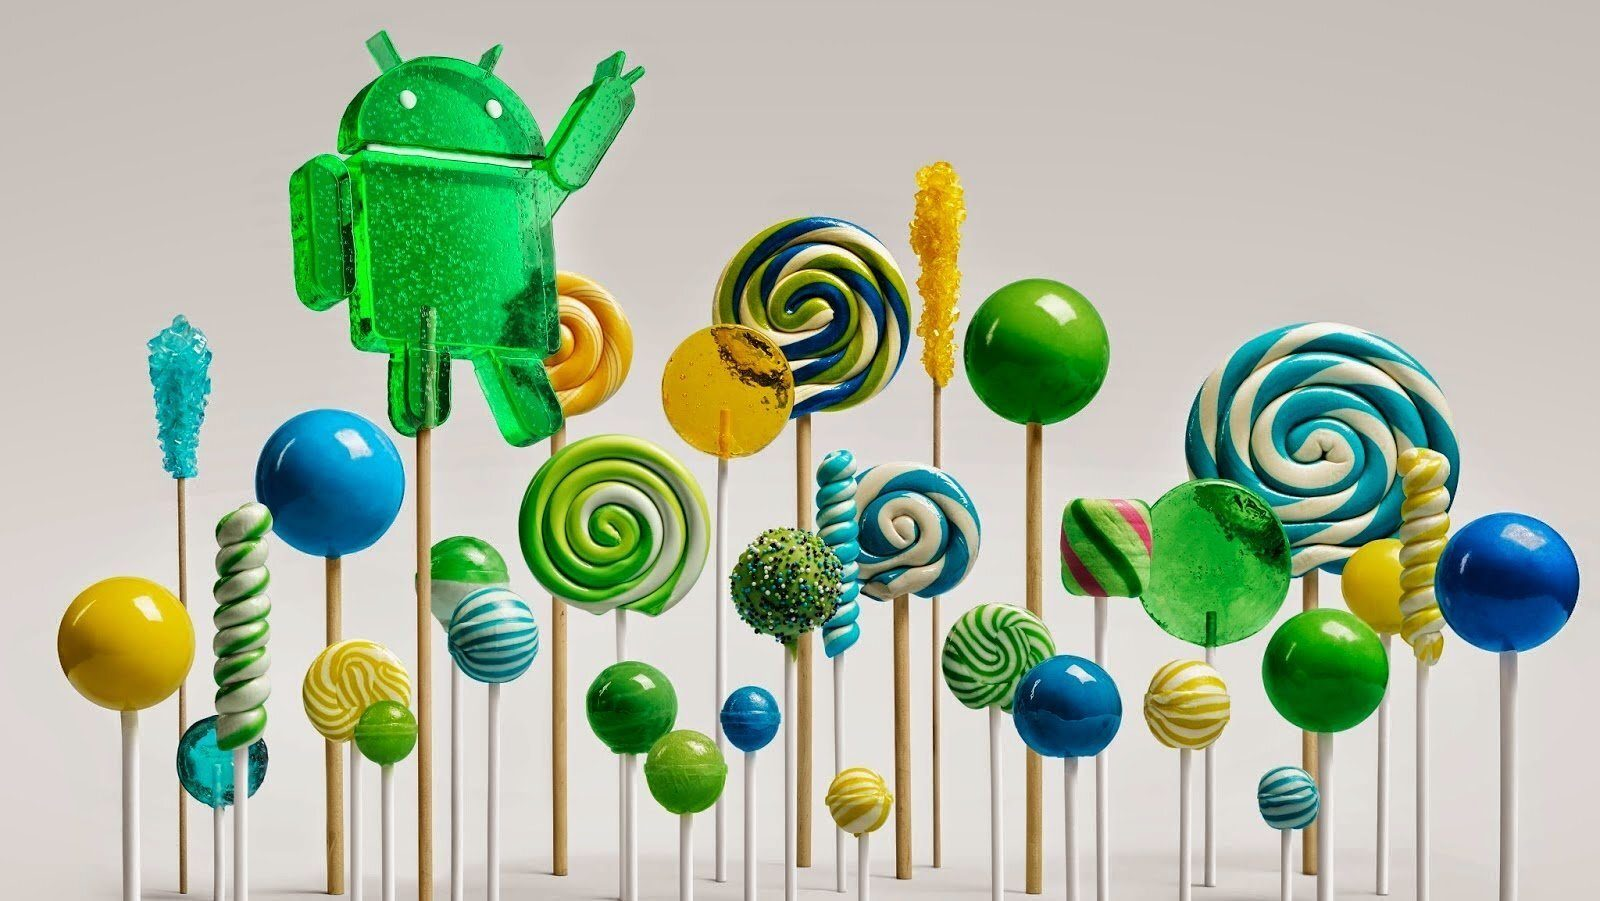 Lollipop Forest APK for all Android 5.0 Lollipop